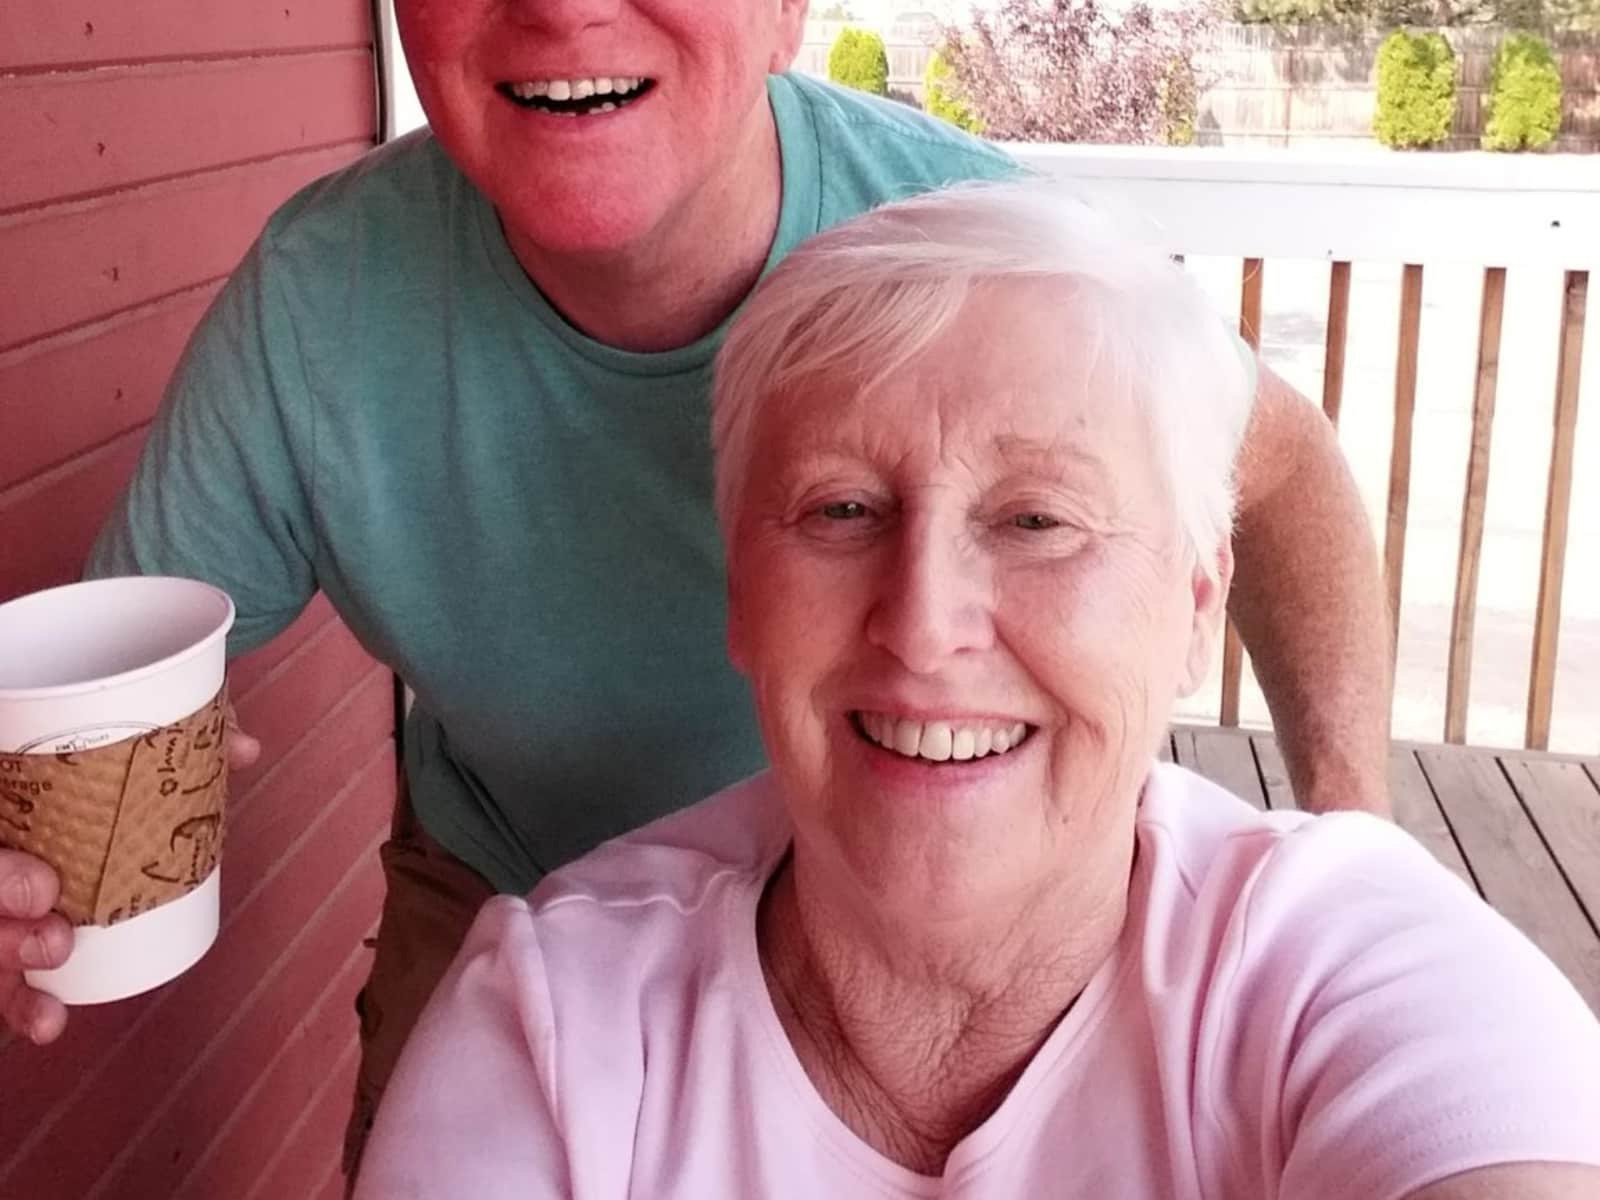 Sandra & bill & William (bill) from Yuma, Arizona, United States